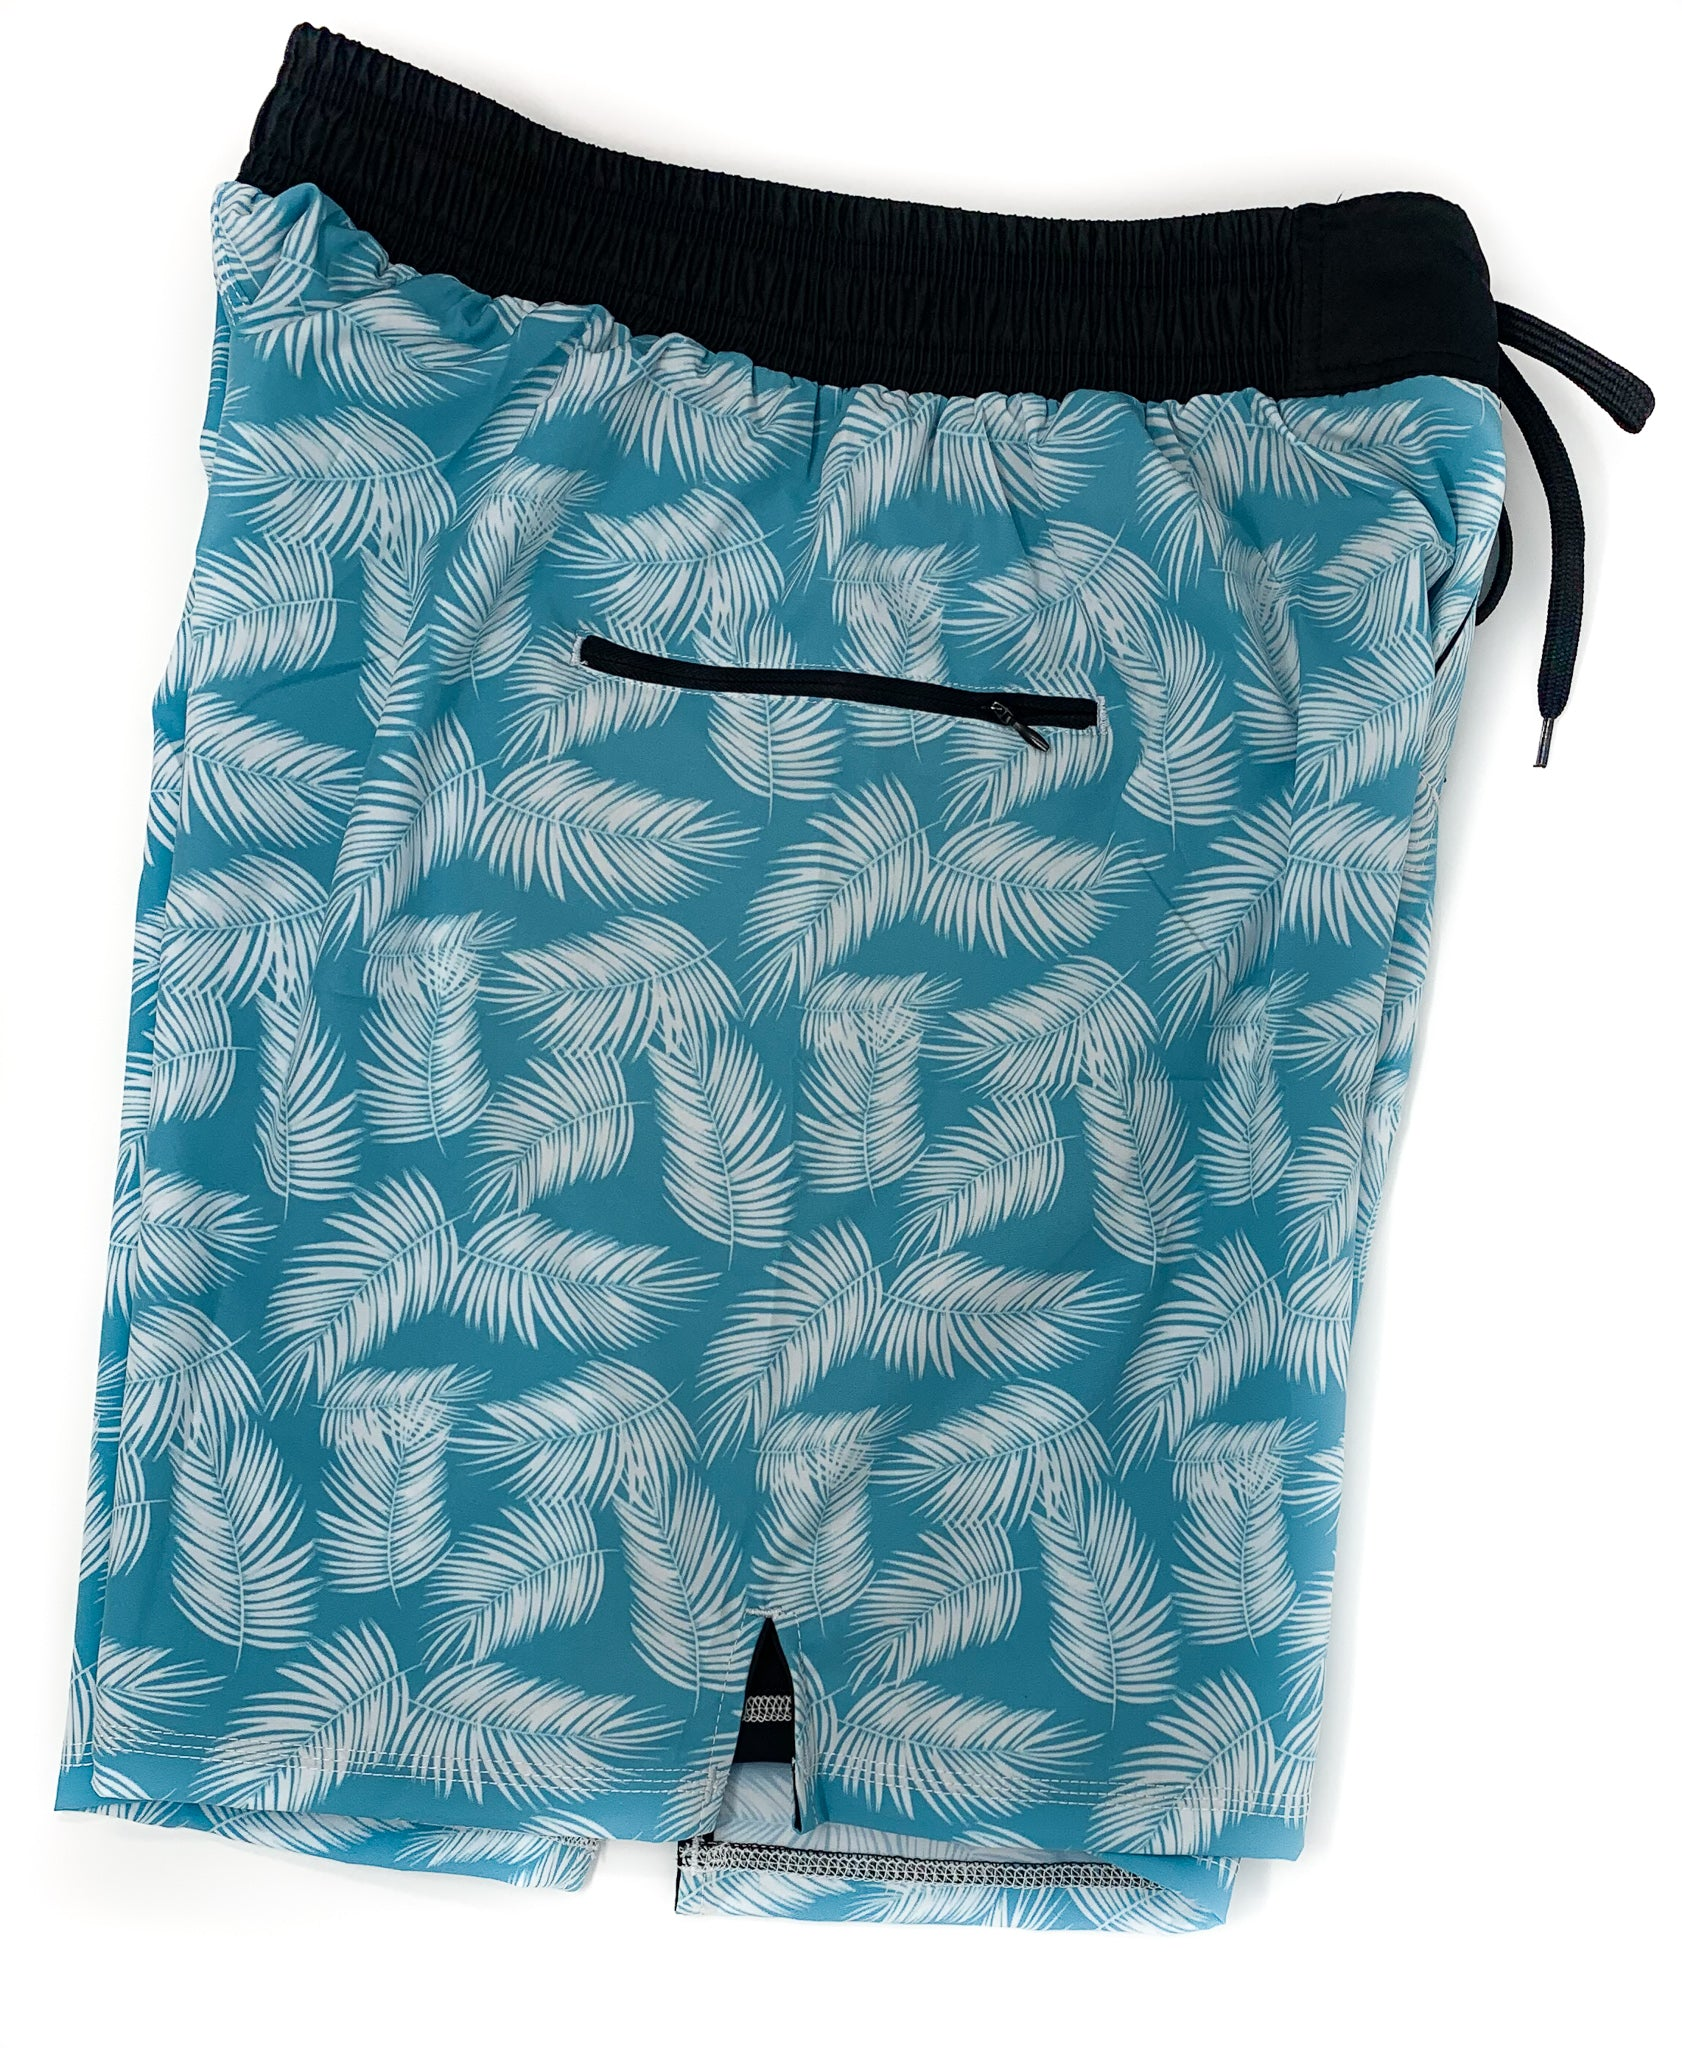 Summer Breeze 3.1 WOD Shorts - 2POOD